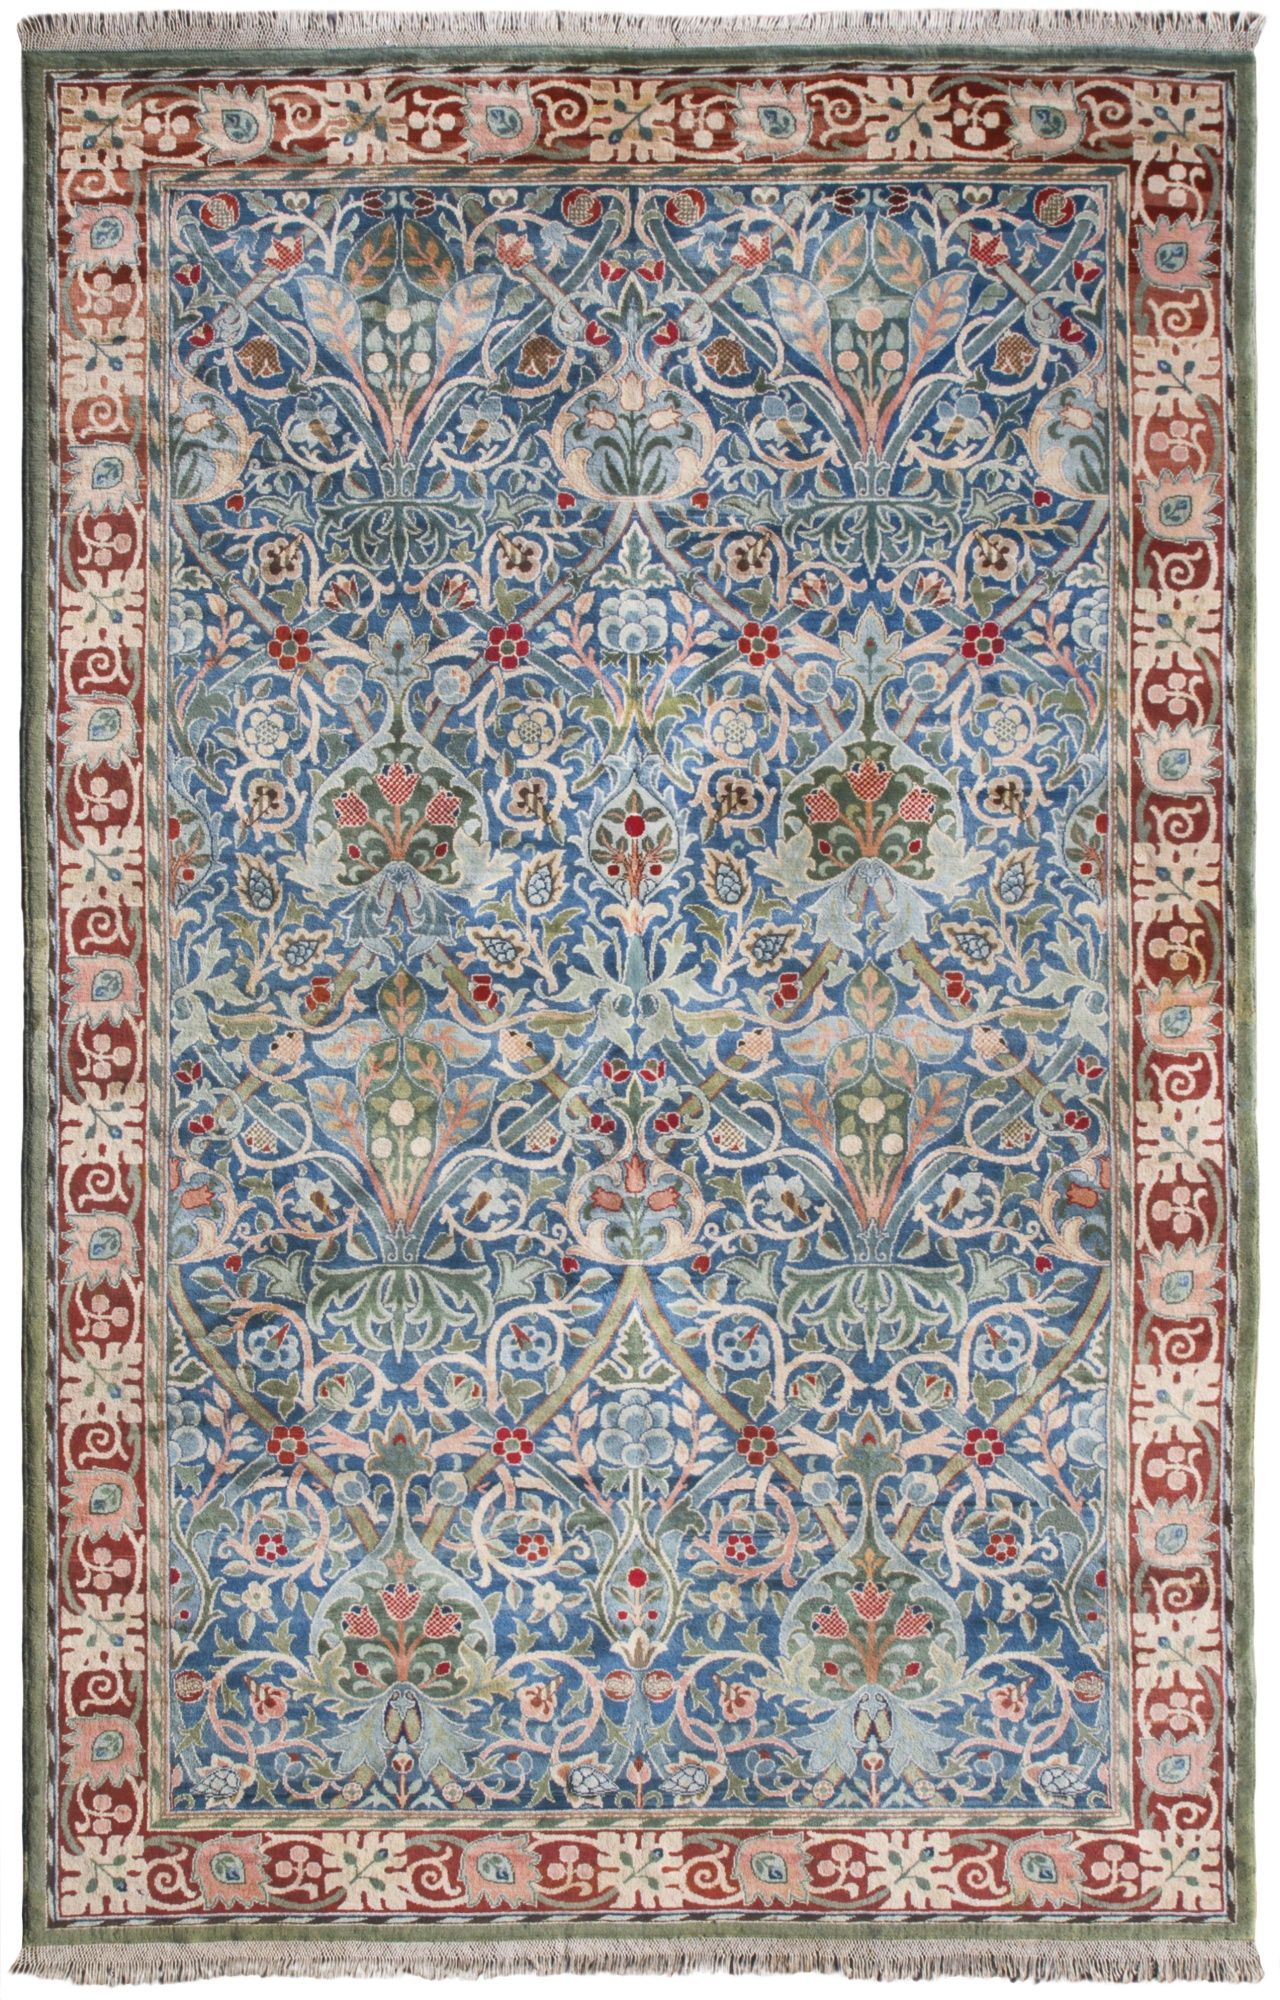 A William Morris Hammersmith Carpet Hand Knotted For Morris Co Designed By John Henry Dearle Lot William Morris Rugs On Carpet Carpet